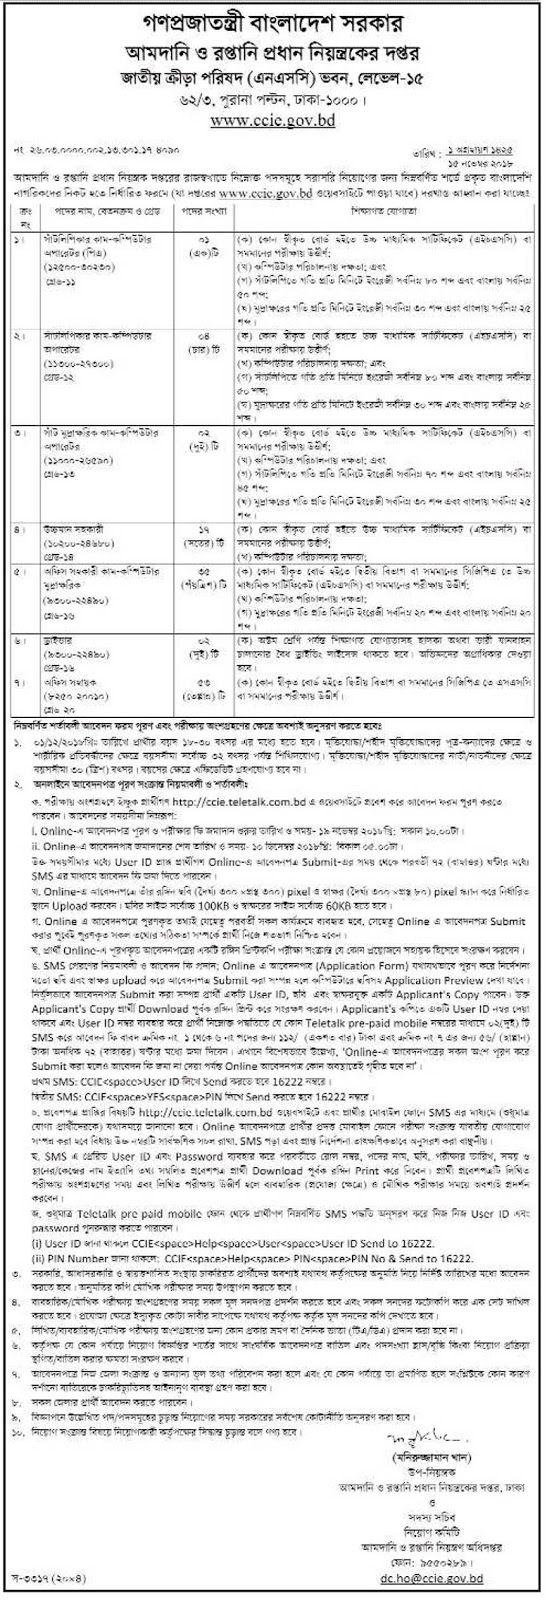 Chief Controller of Imports and Exports (CCIE) Job Circular 2018